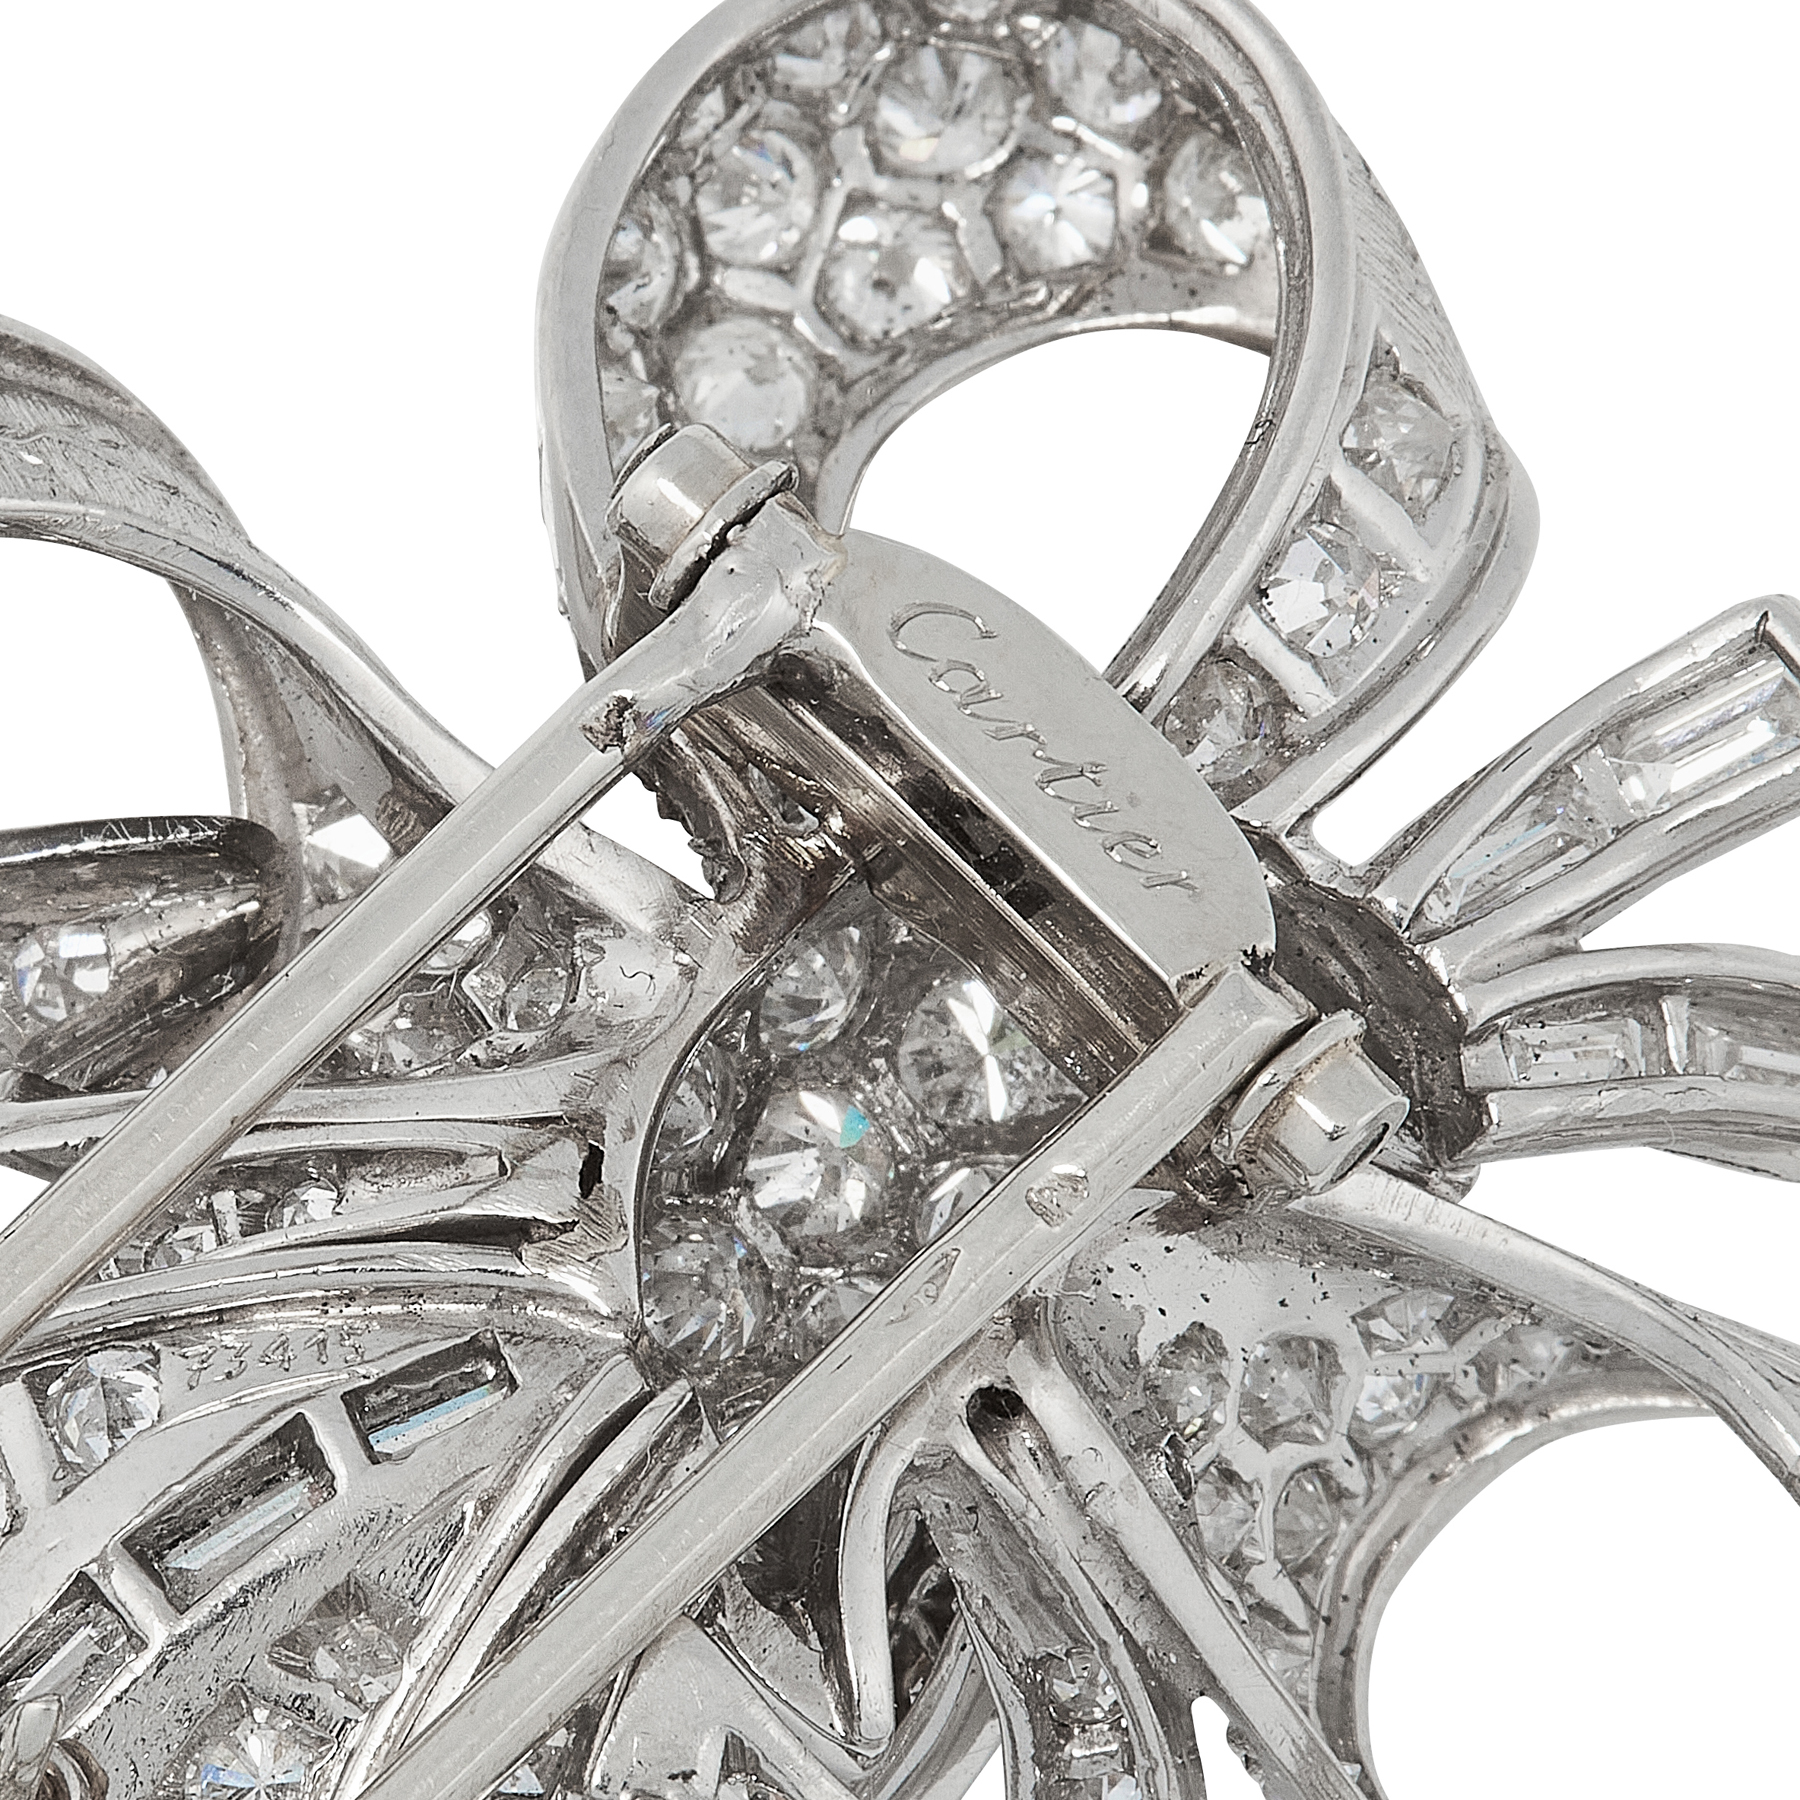 A DIAMOND BROOCH, CARTIER CIRCA 1950 in platinum, designed as an array of ribbon motifs, jewelled - Image 2 of 2